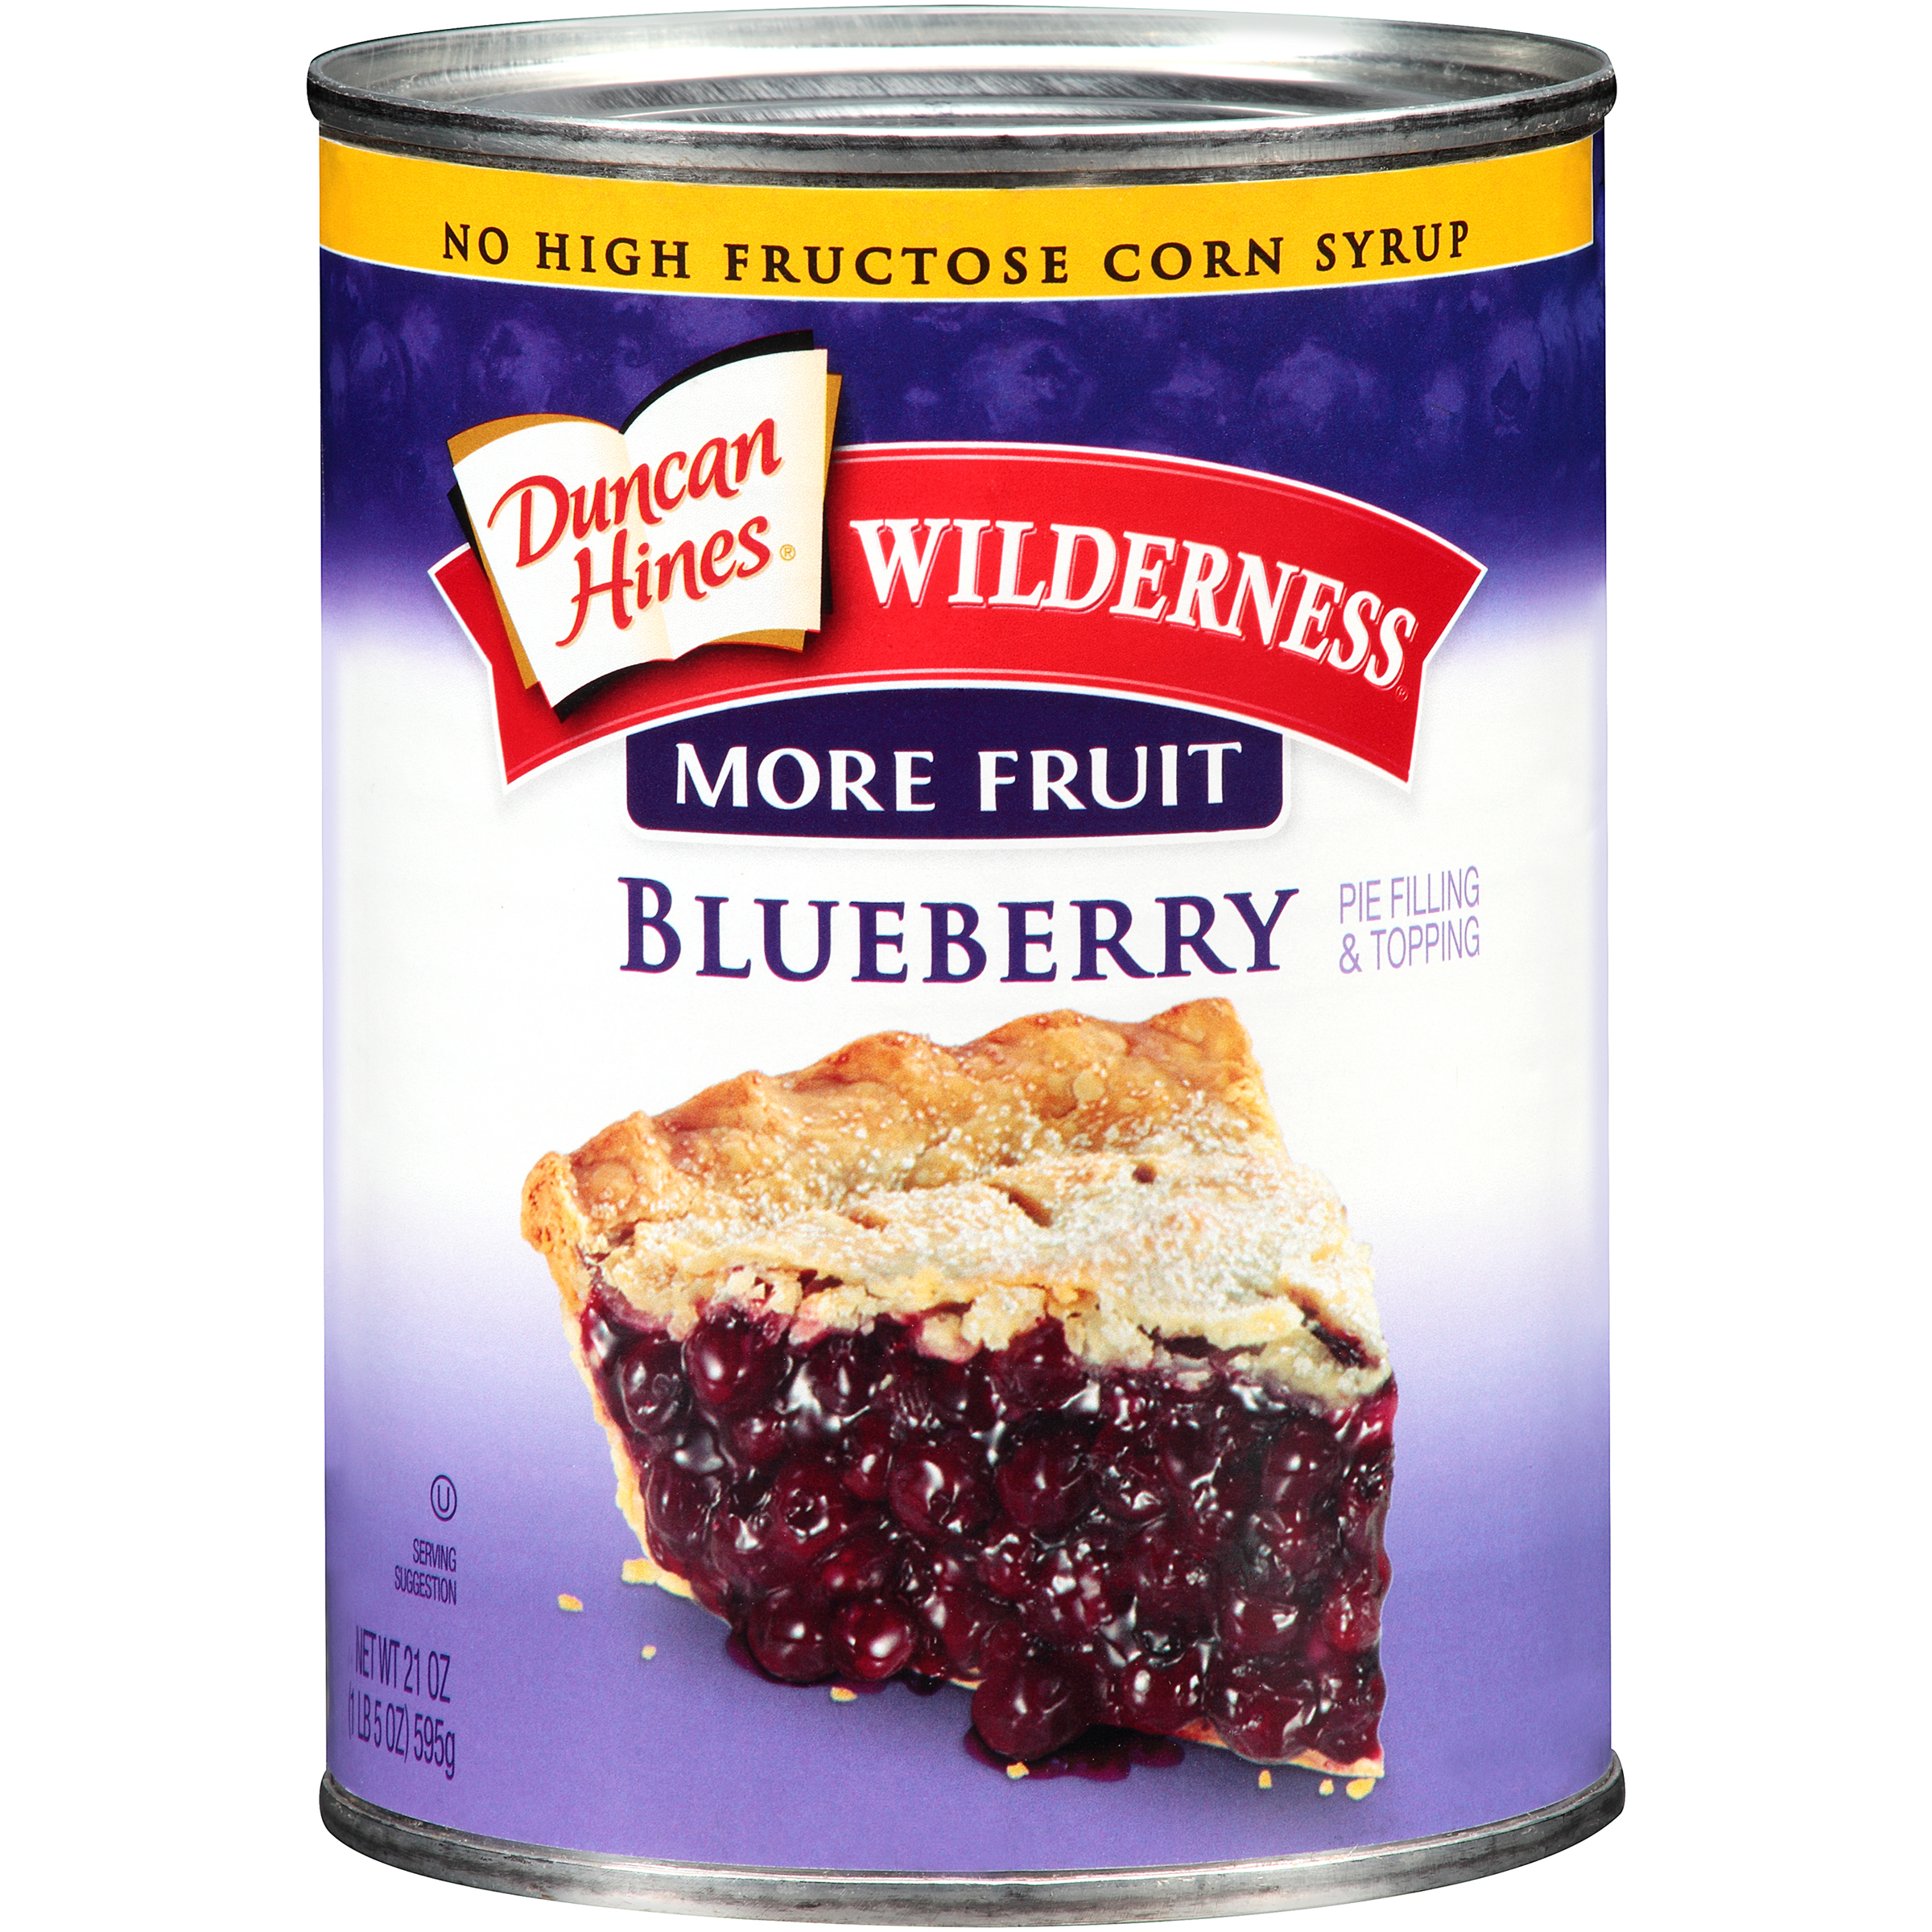 Duncan Hines�� Wilderness�� More Fruit Blueberry Pie Filling & Topping 21 oz. Can